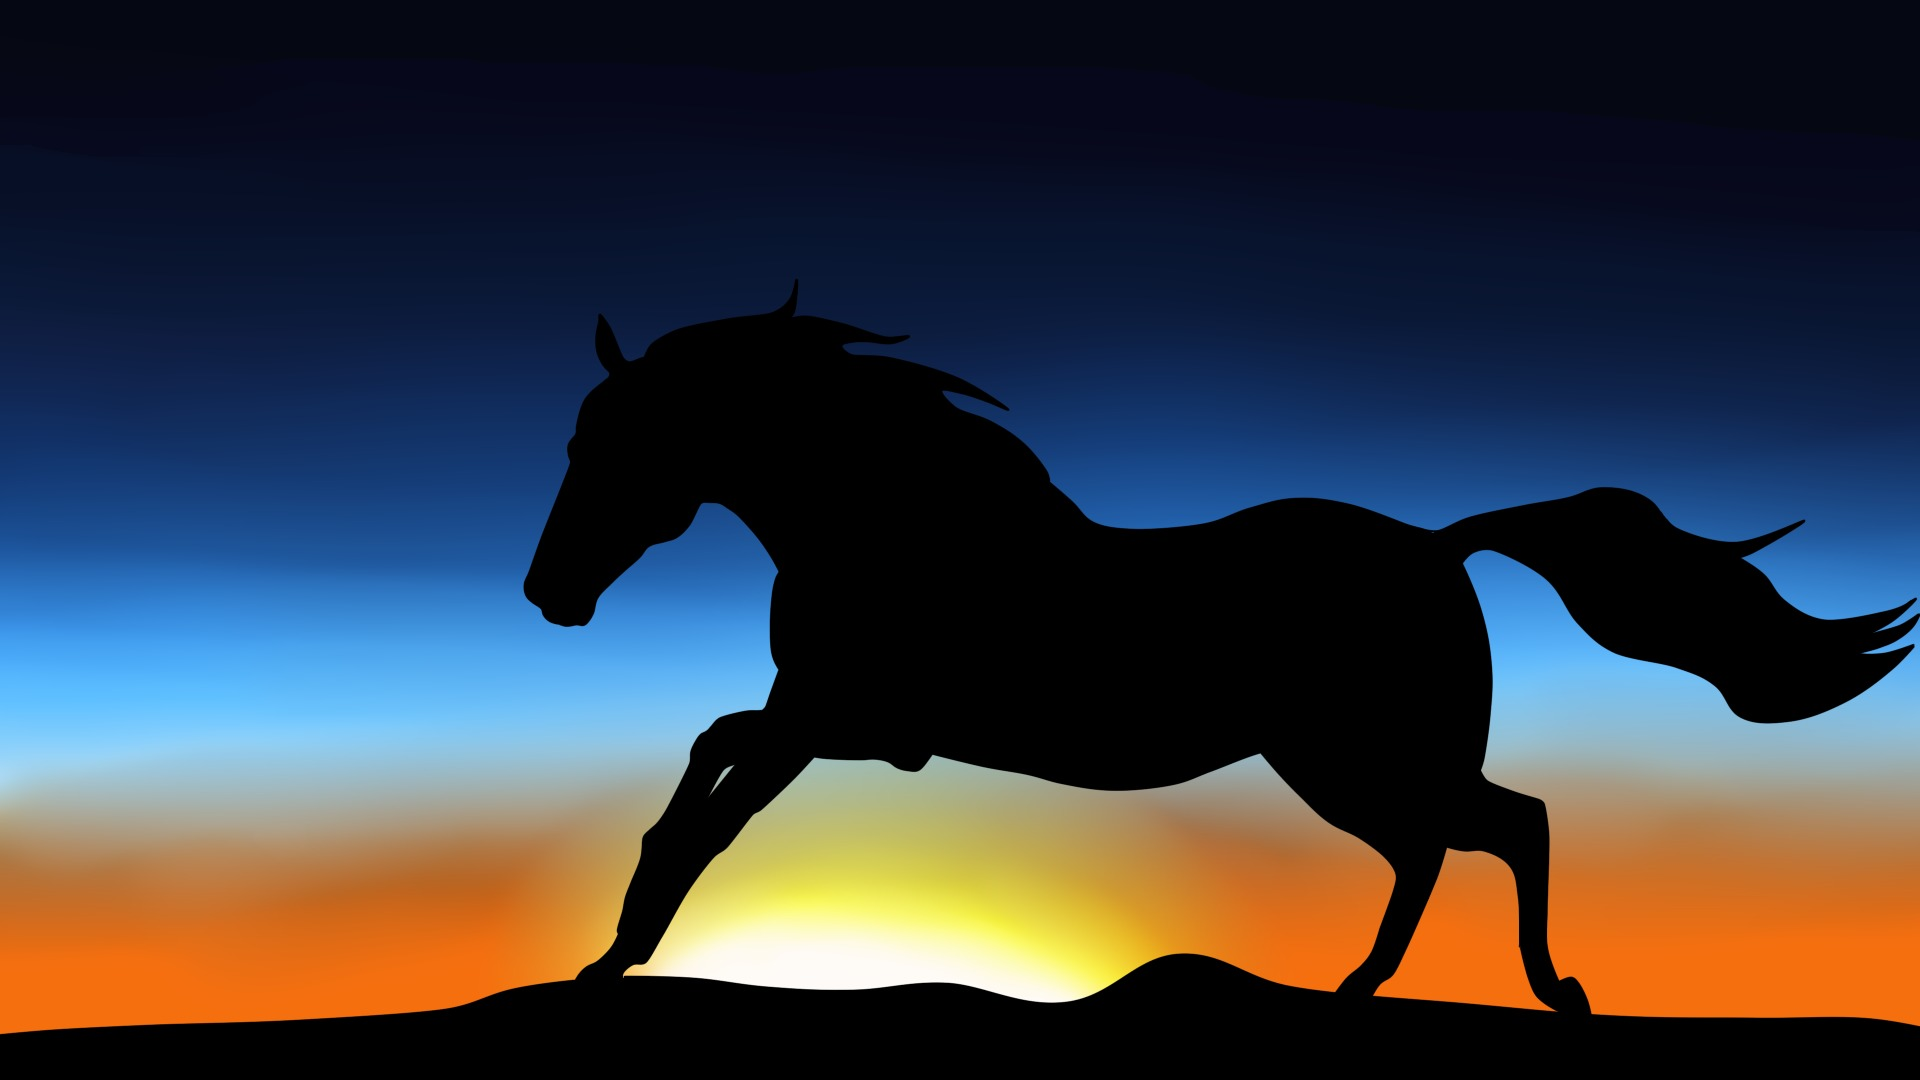 Wallpaper animal horse mane jumps tail silhouette sky wallpapers 1920x1080